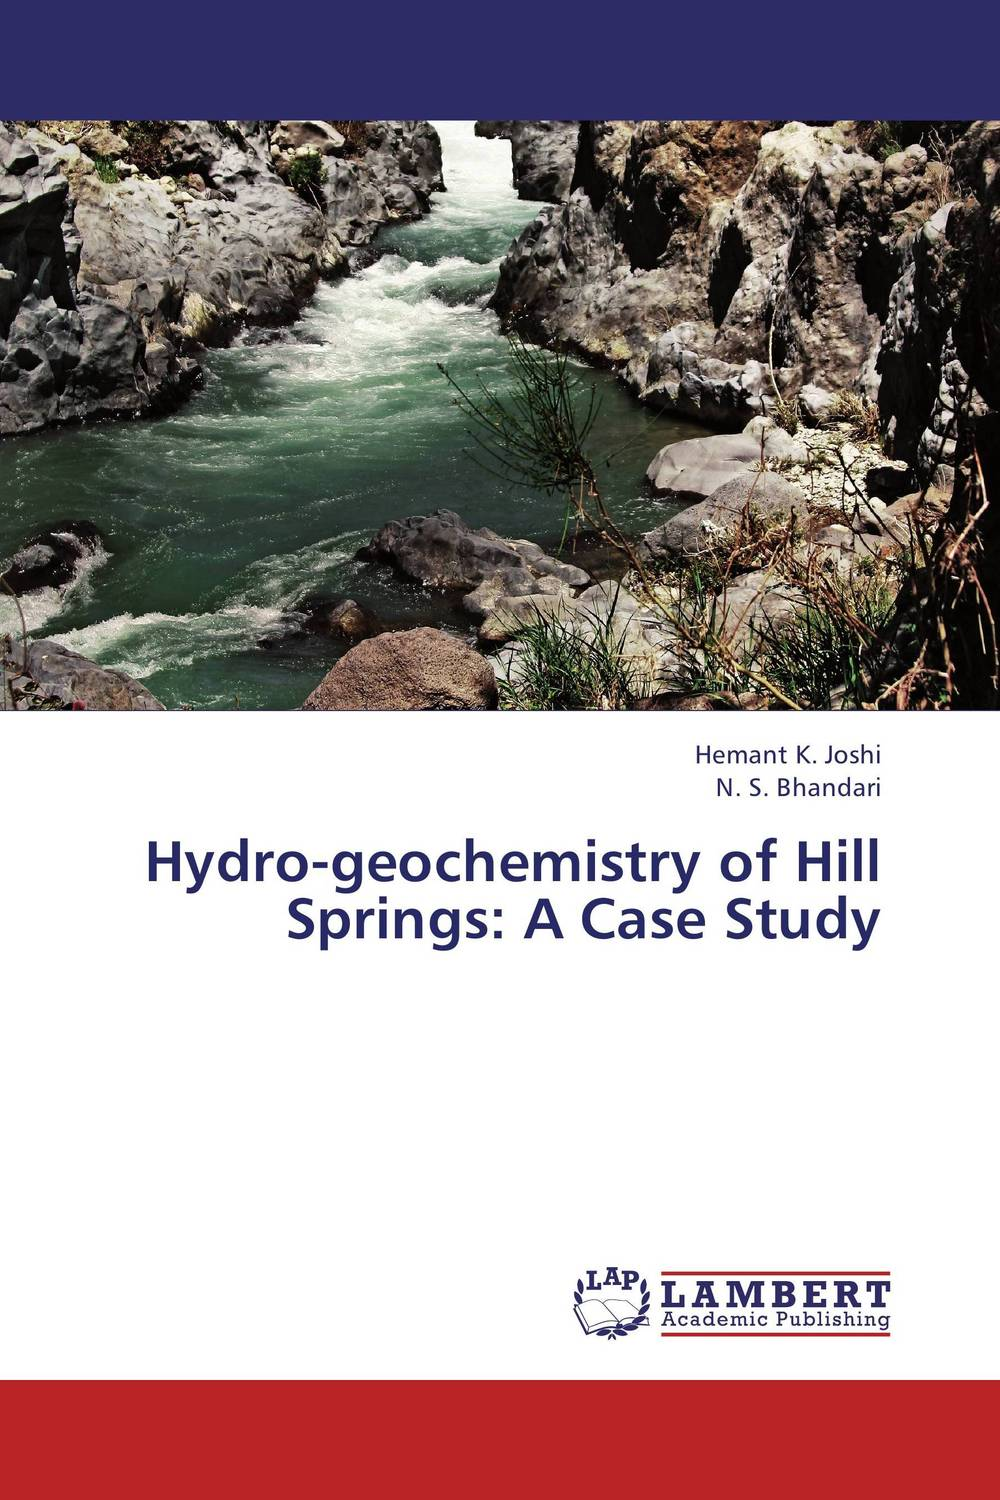 Hydro-geochemistry of Hill Springs: A Case Study